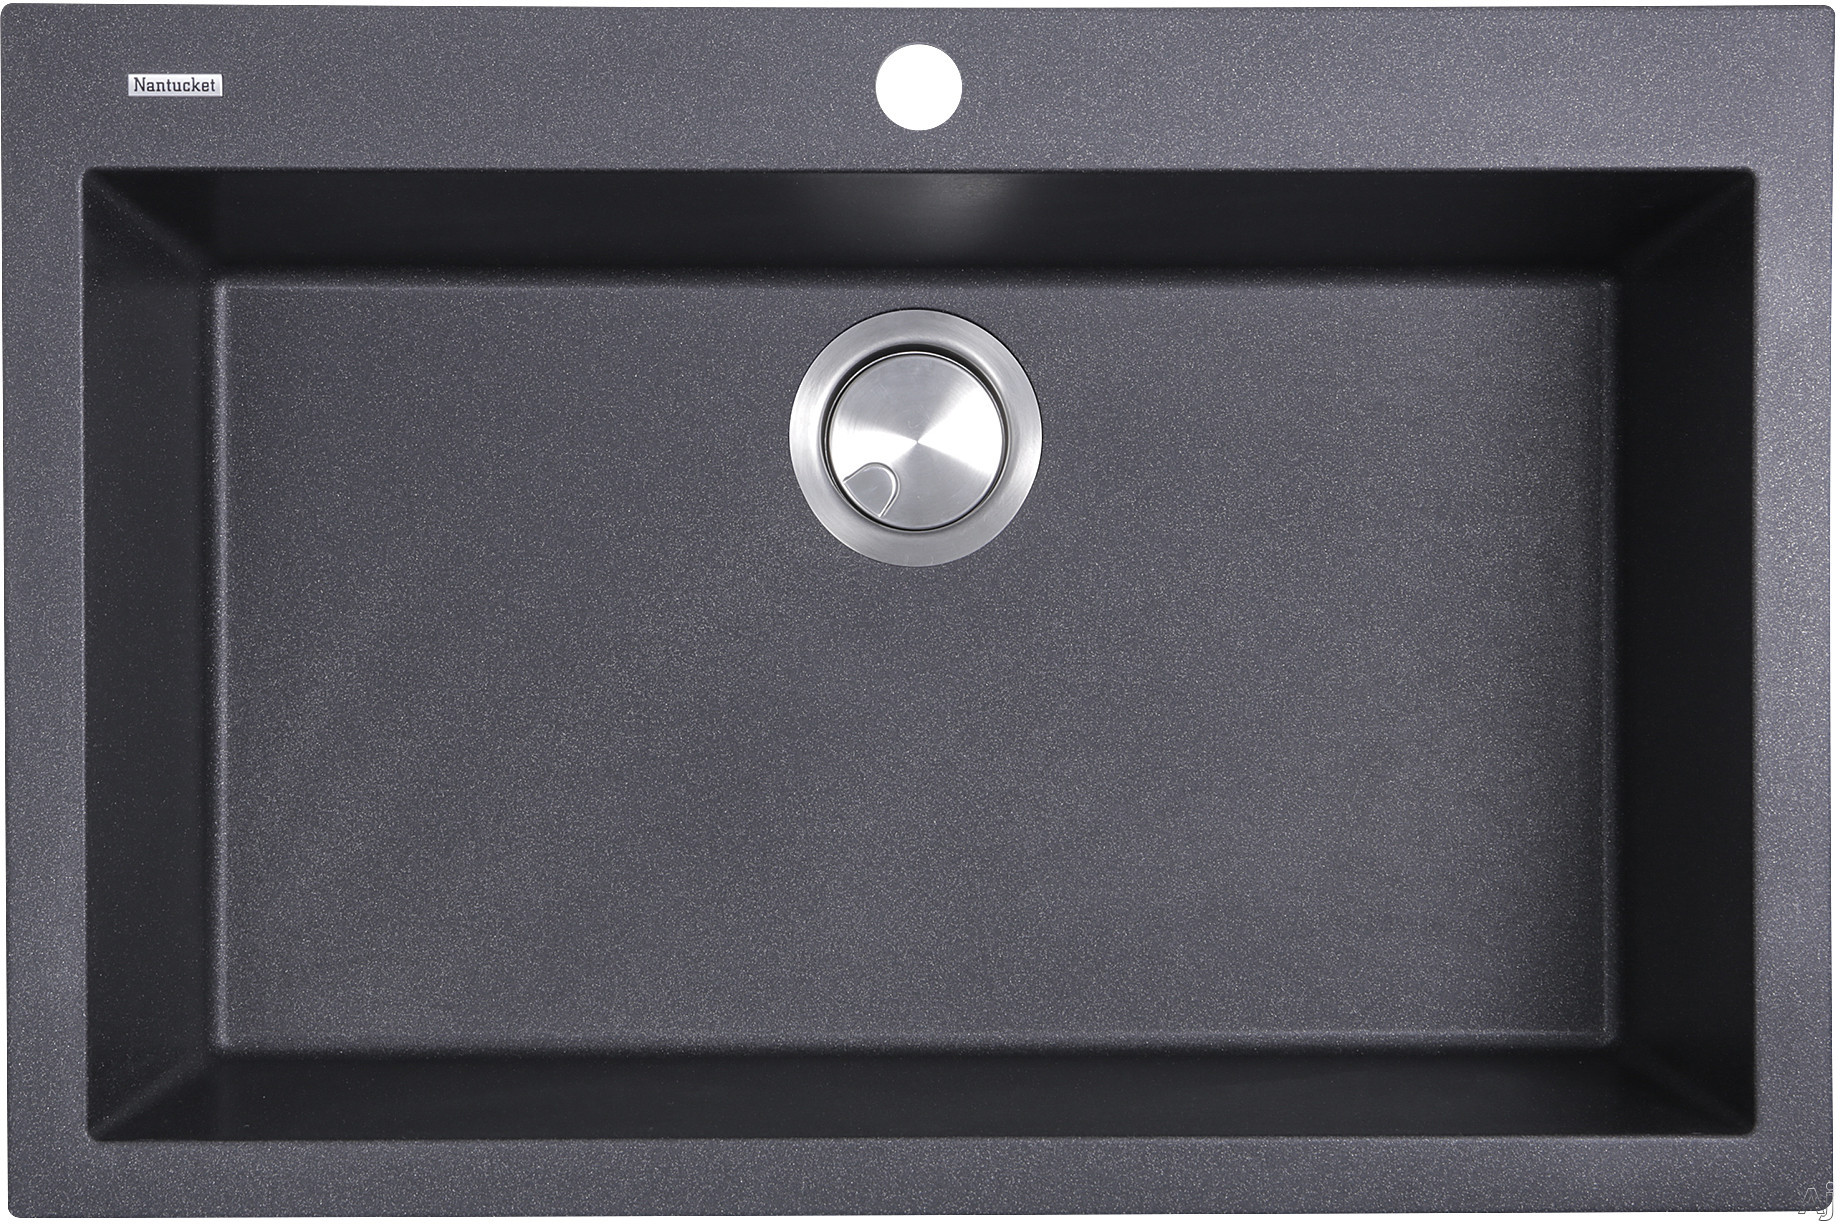 Nantucket Sinks Plymouth Collection PR3020DMBL 30 Inch Dual Mount Granite Composite Kitchen Sink with Dual Mount Design, Heat Resistant and Scratch Resistant: Matte Black